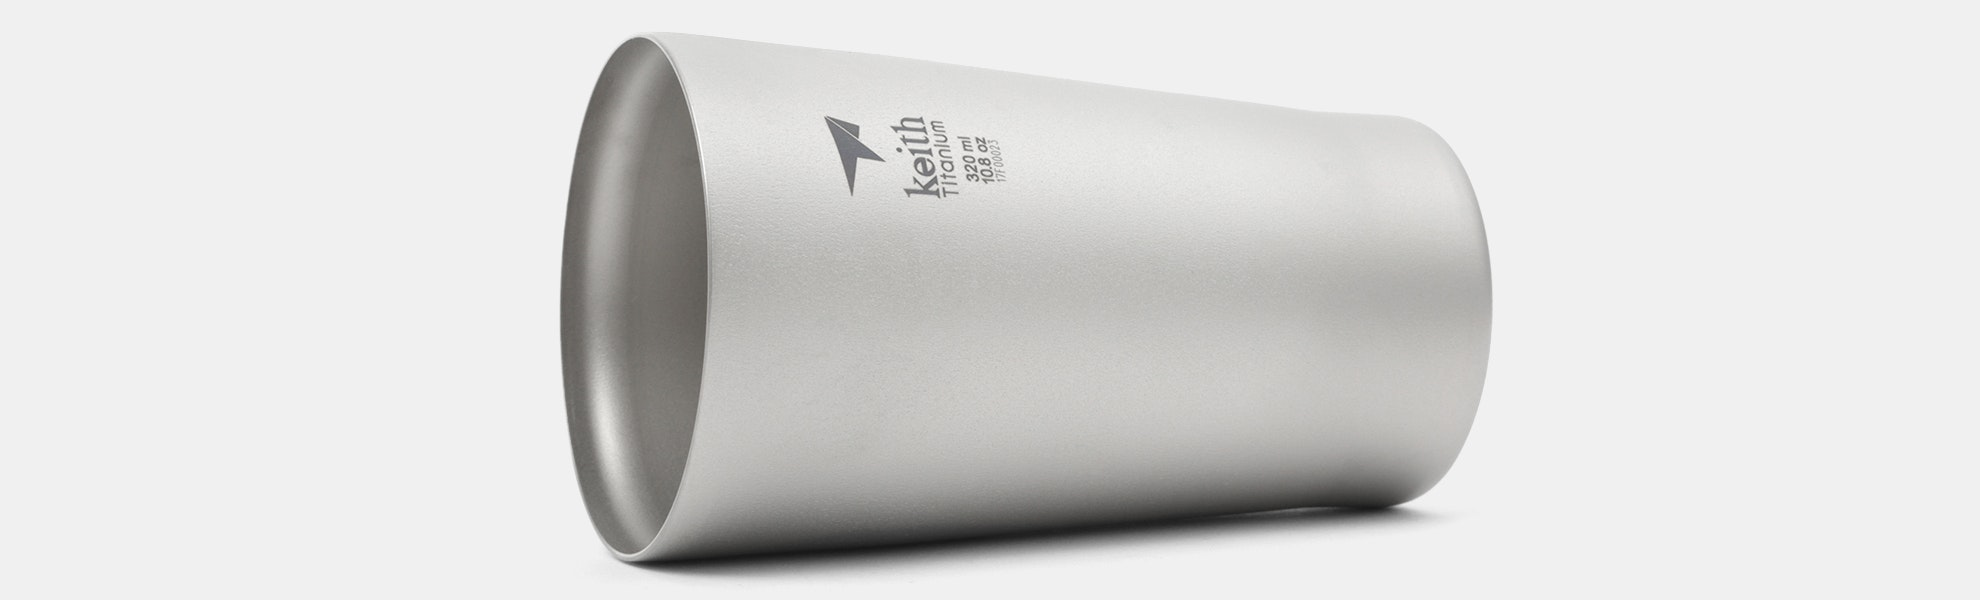 Keith Titanium Ti9221 Double-Wall Beer Cup